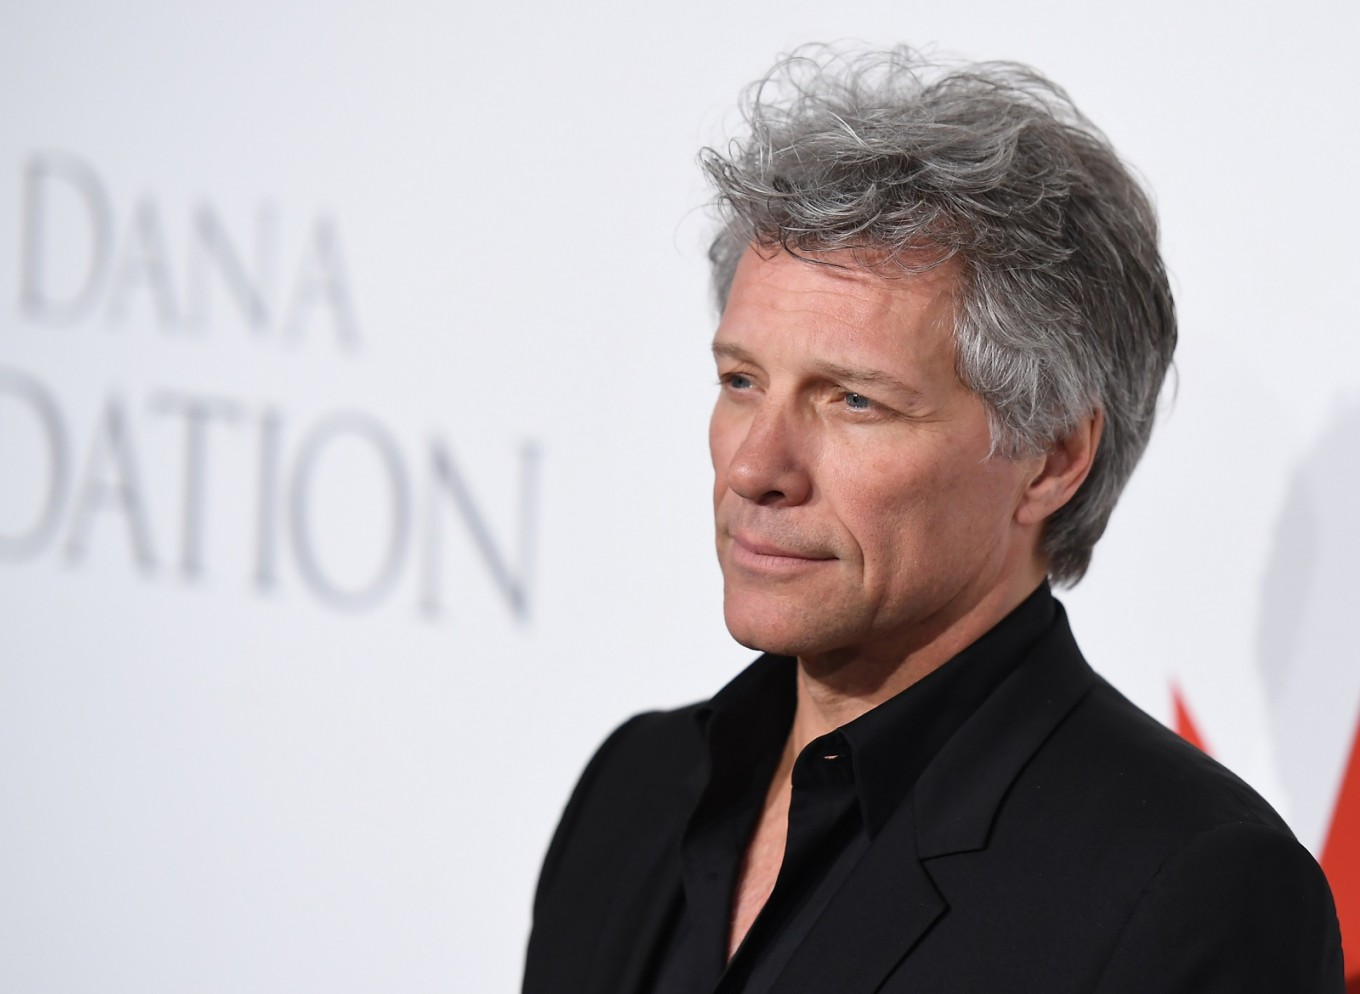 Jon Bon Jovi collaborates with fans for new song about coronavirus